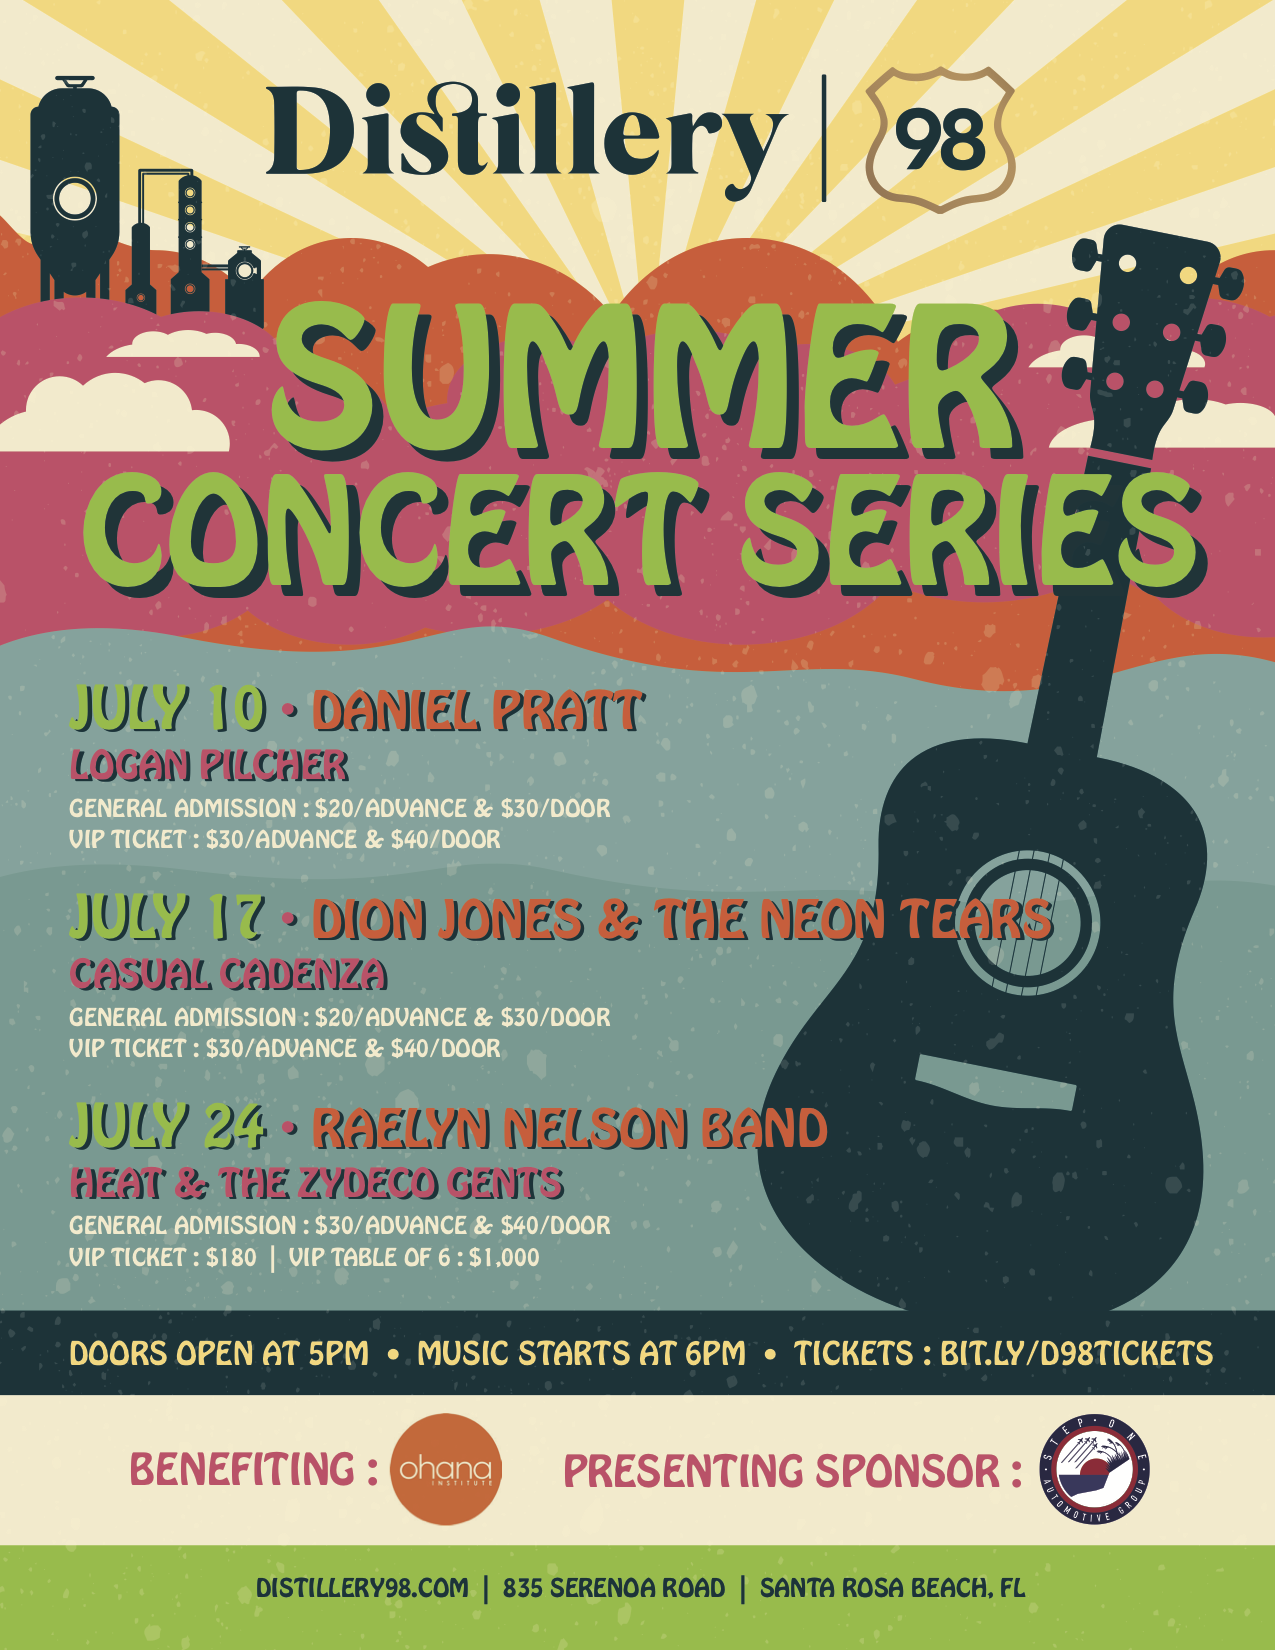 Distillery 98 Launches Summer Concert Series to Benefit The Ohana Institute